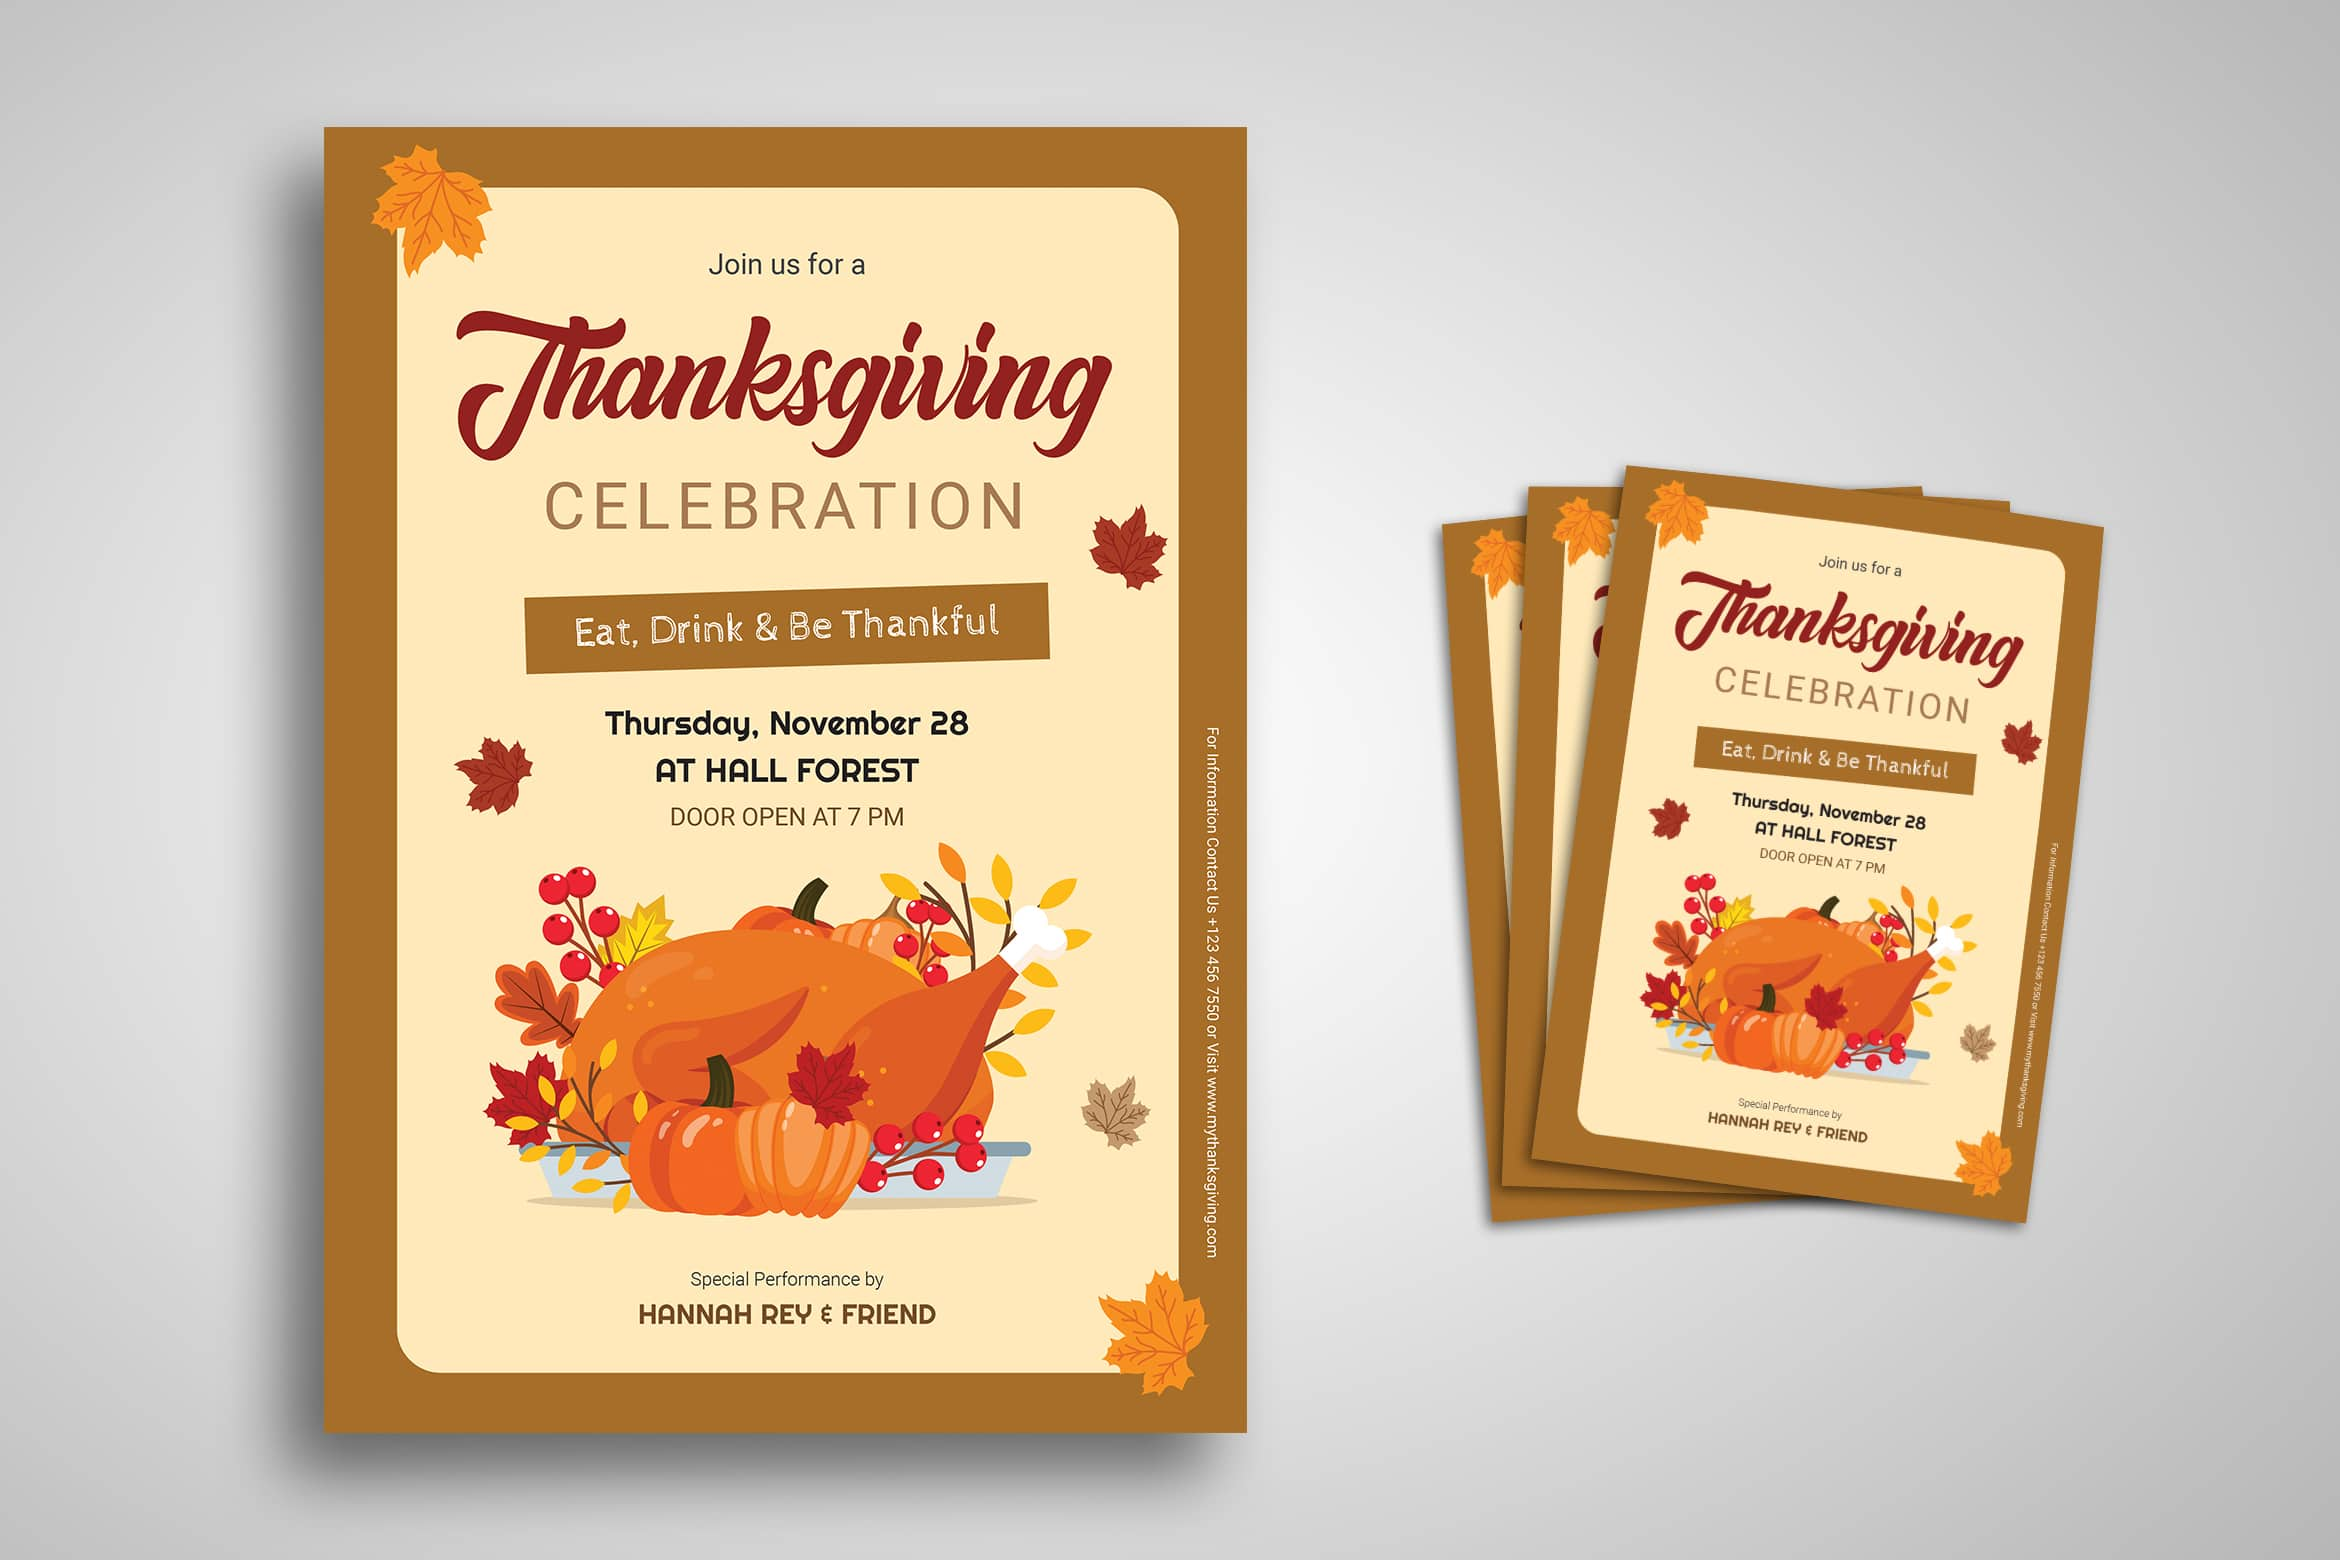 Flyer Template - Thanksgiving Celebration